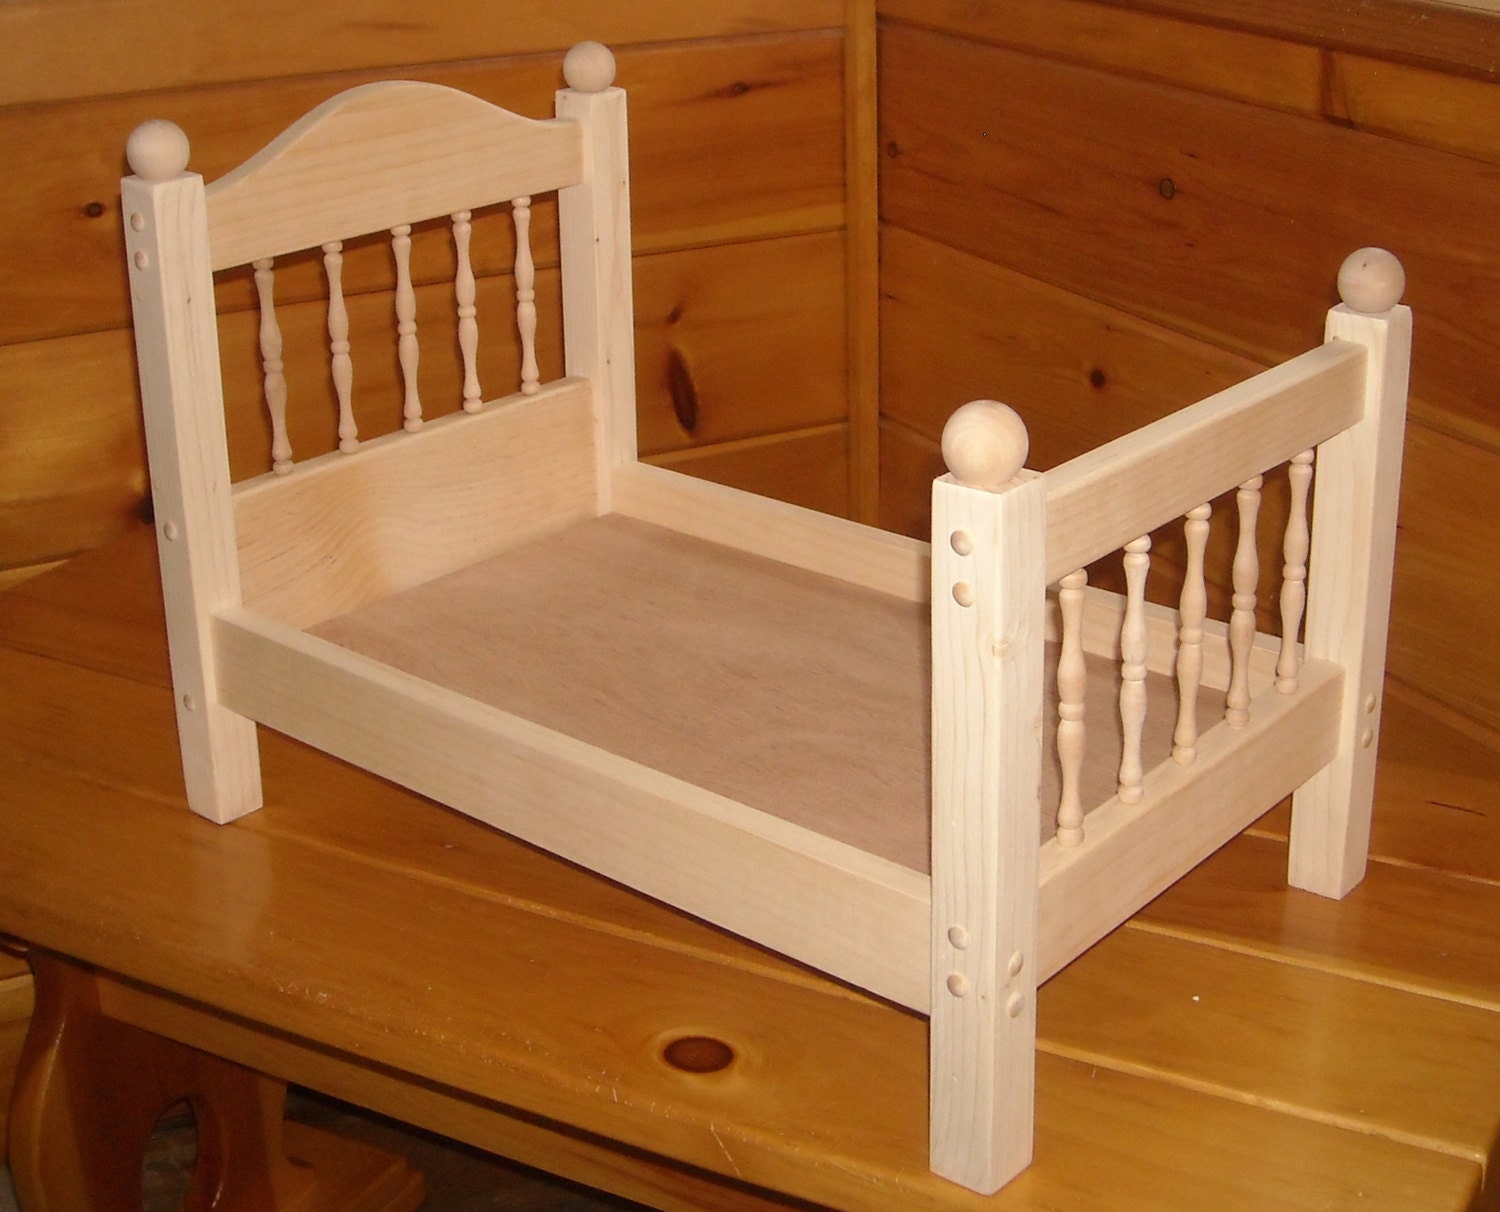 Marvelous photograph of Handmade Spindle Doll Bed for 18 inch doll by admwoodcrafts with #3E1403 color and 1500x1212 pixels